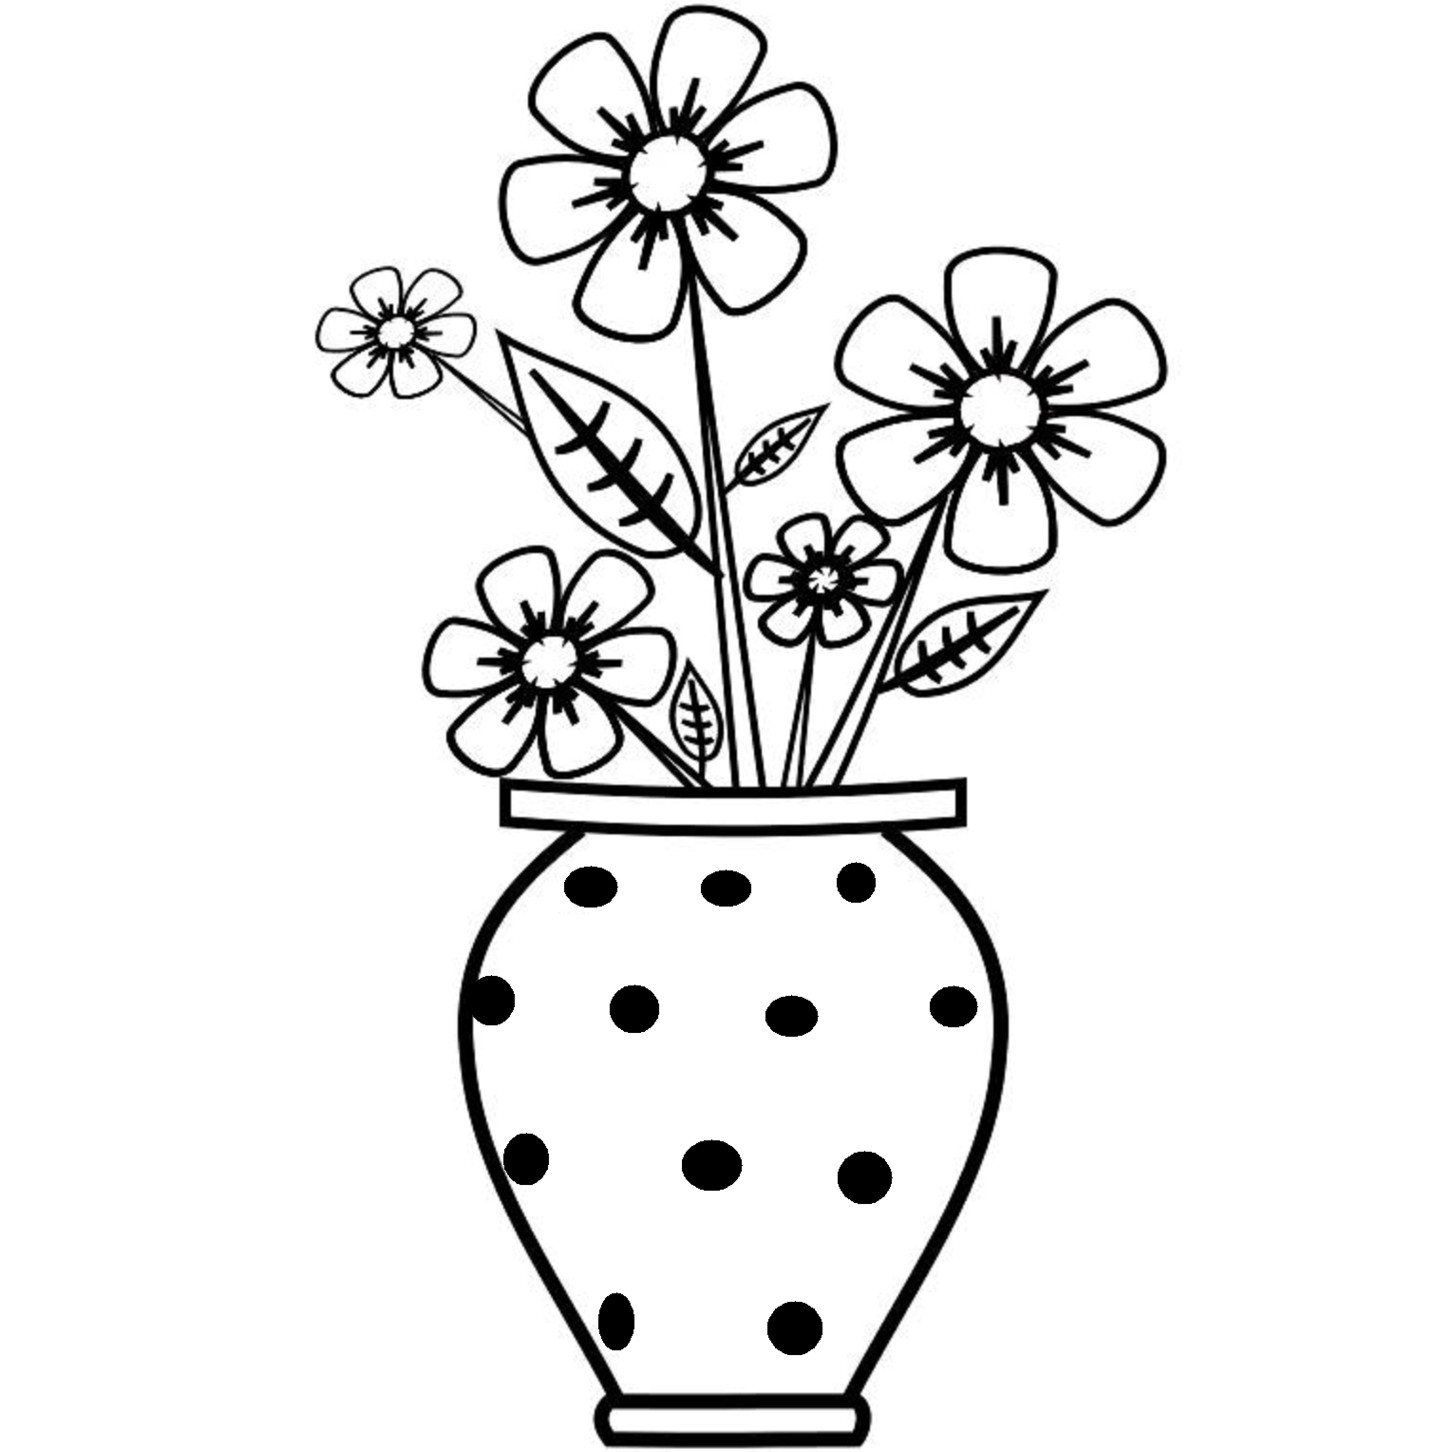 1455x1452 Flower Vase With Flowers Drawings For Kids Pot Drawing Flowerh